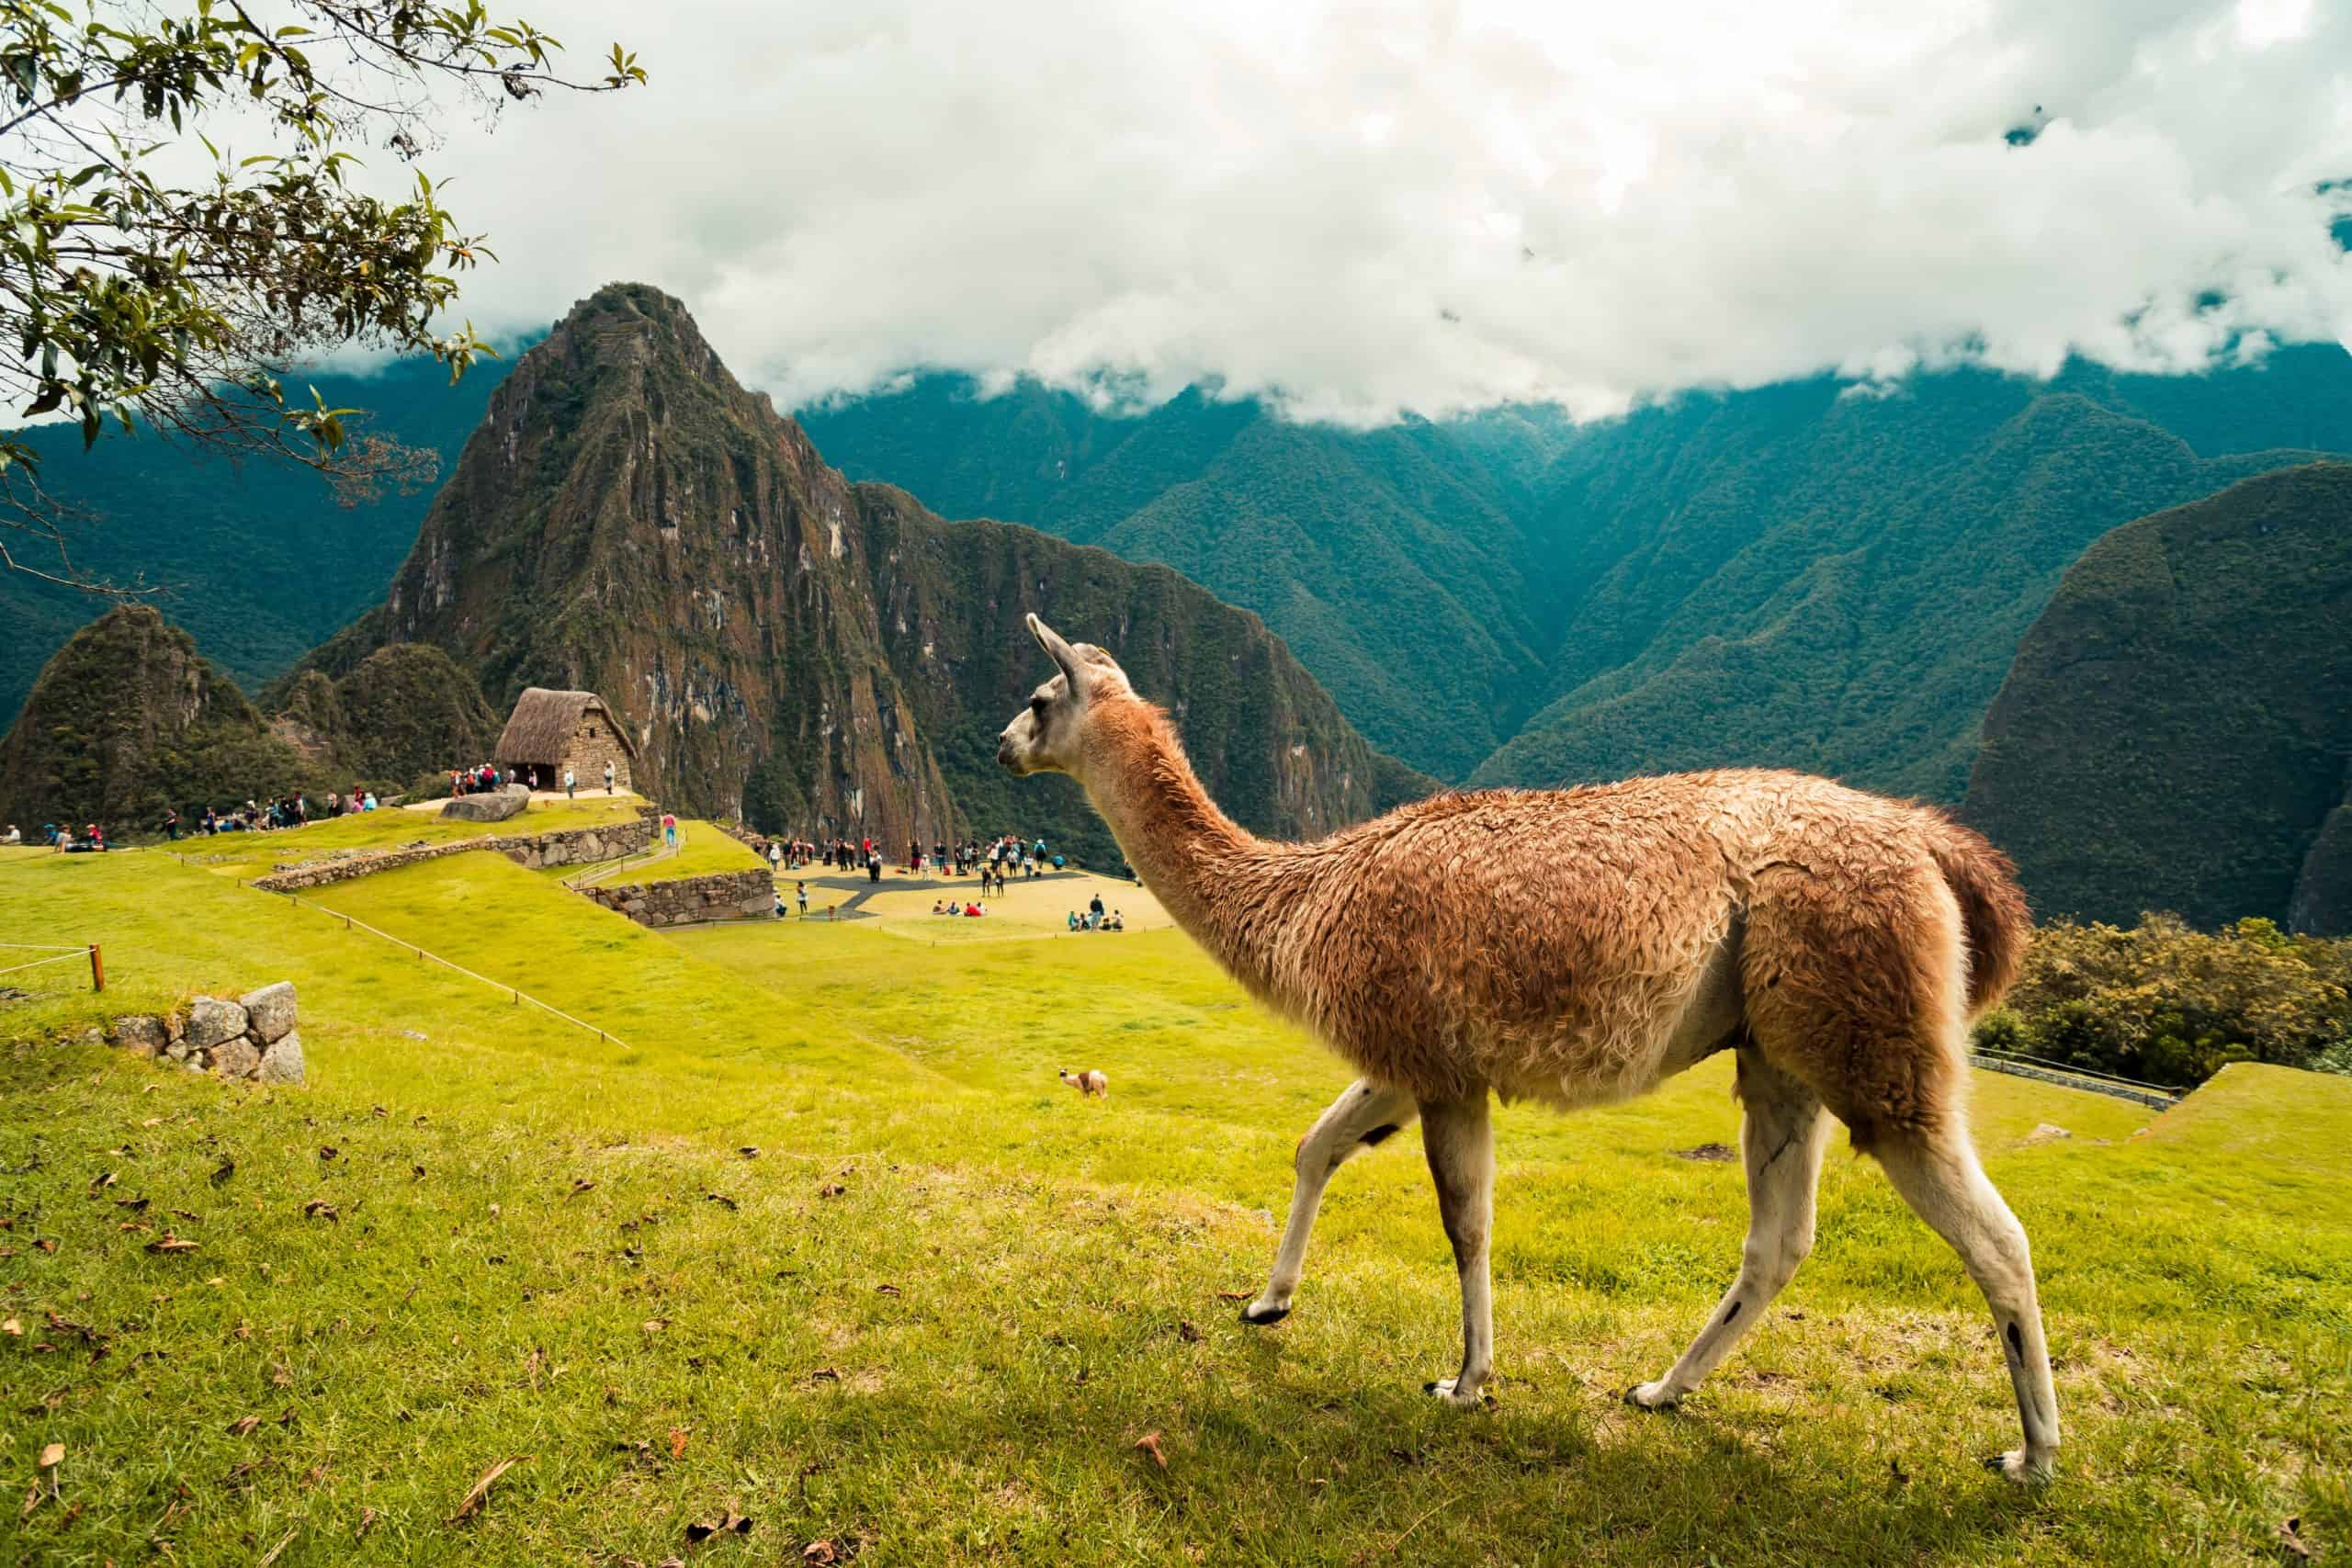 A Guide To Make Your Trip To Machu Picchu A Successful One